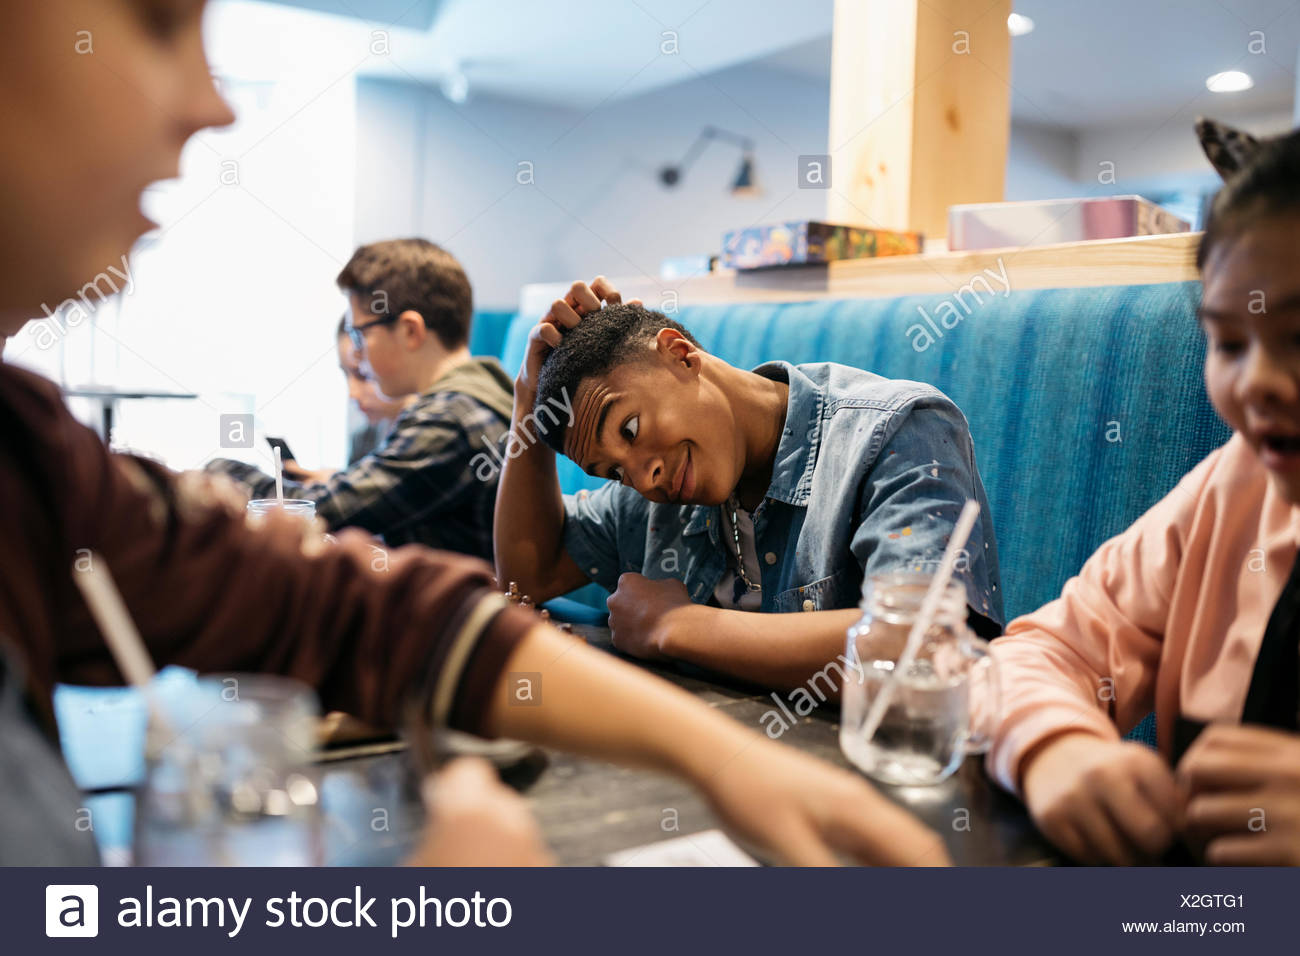 Tween boy playing game with friend at cafe table - Stock Image